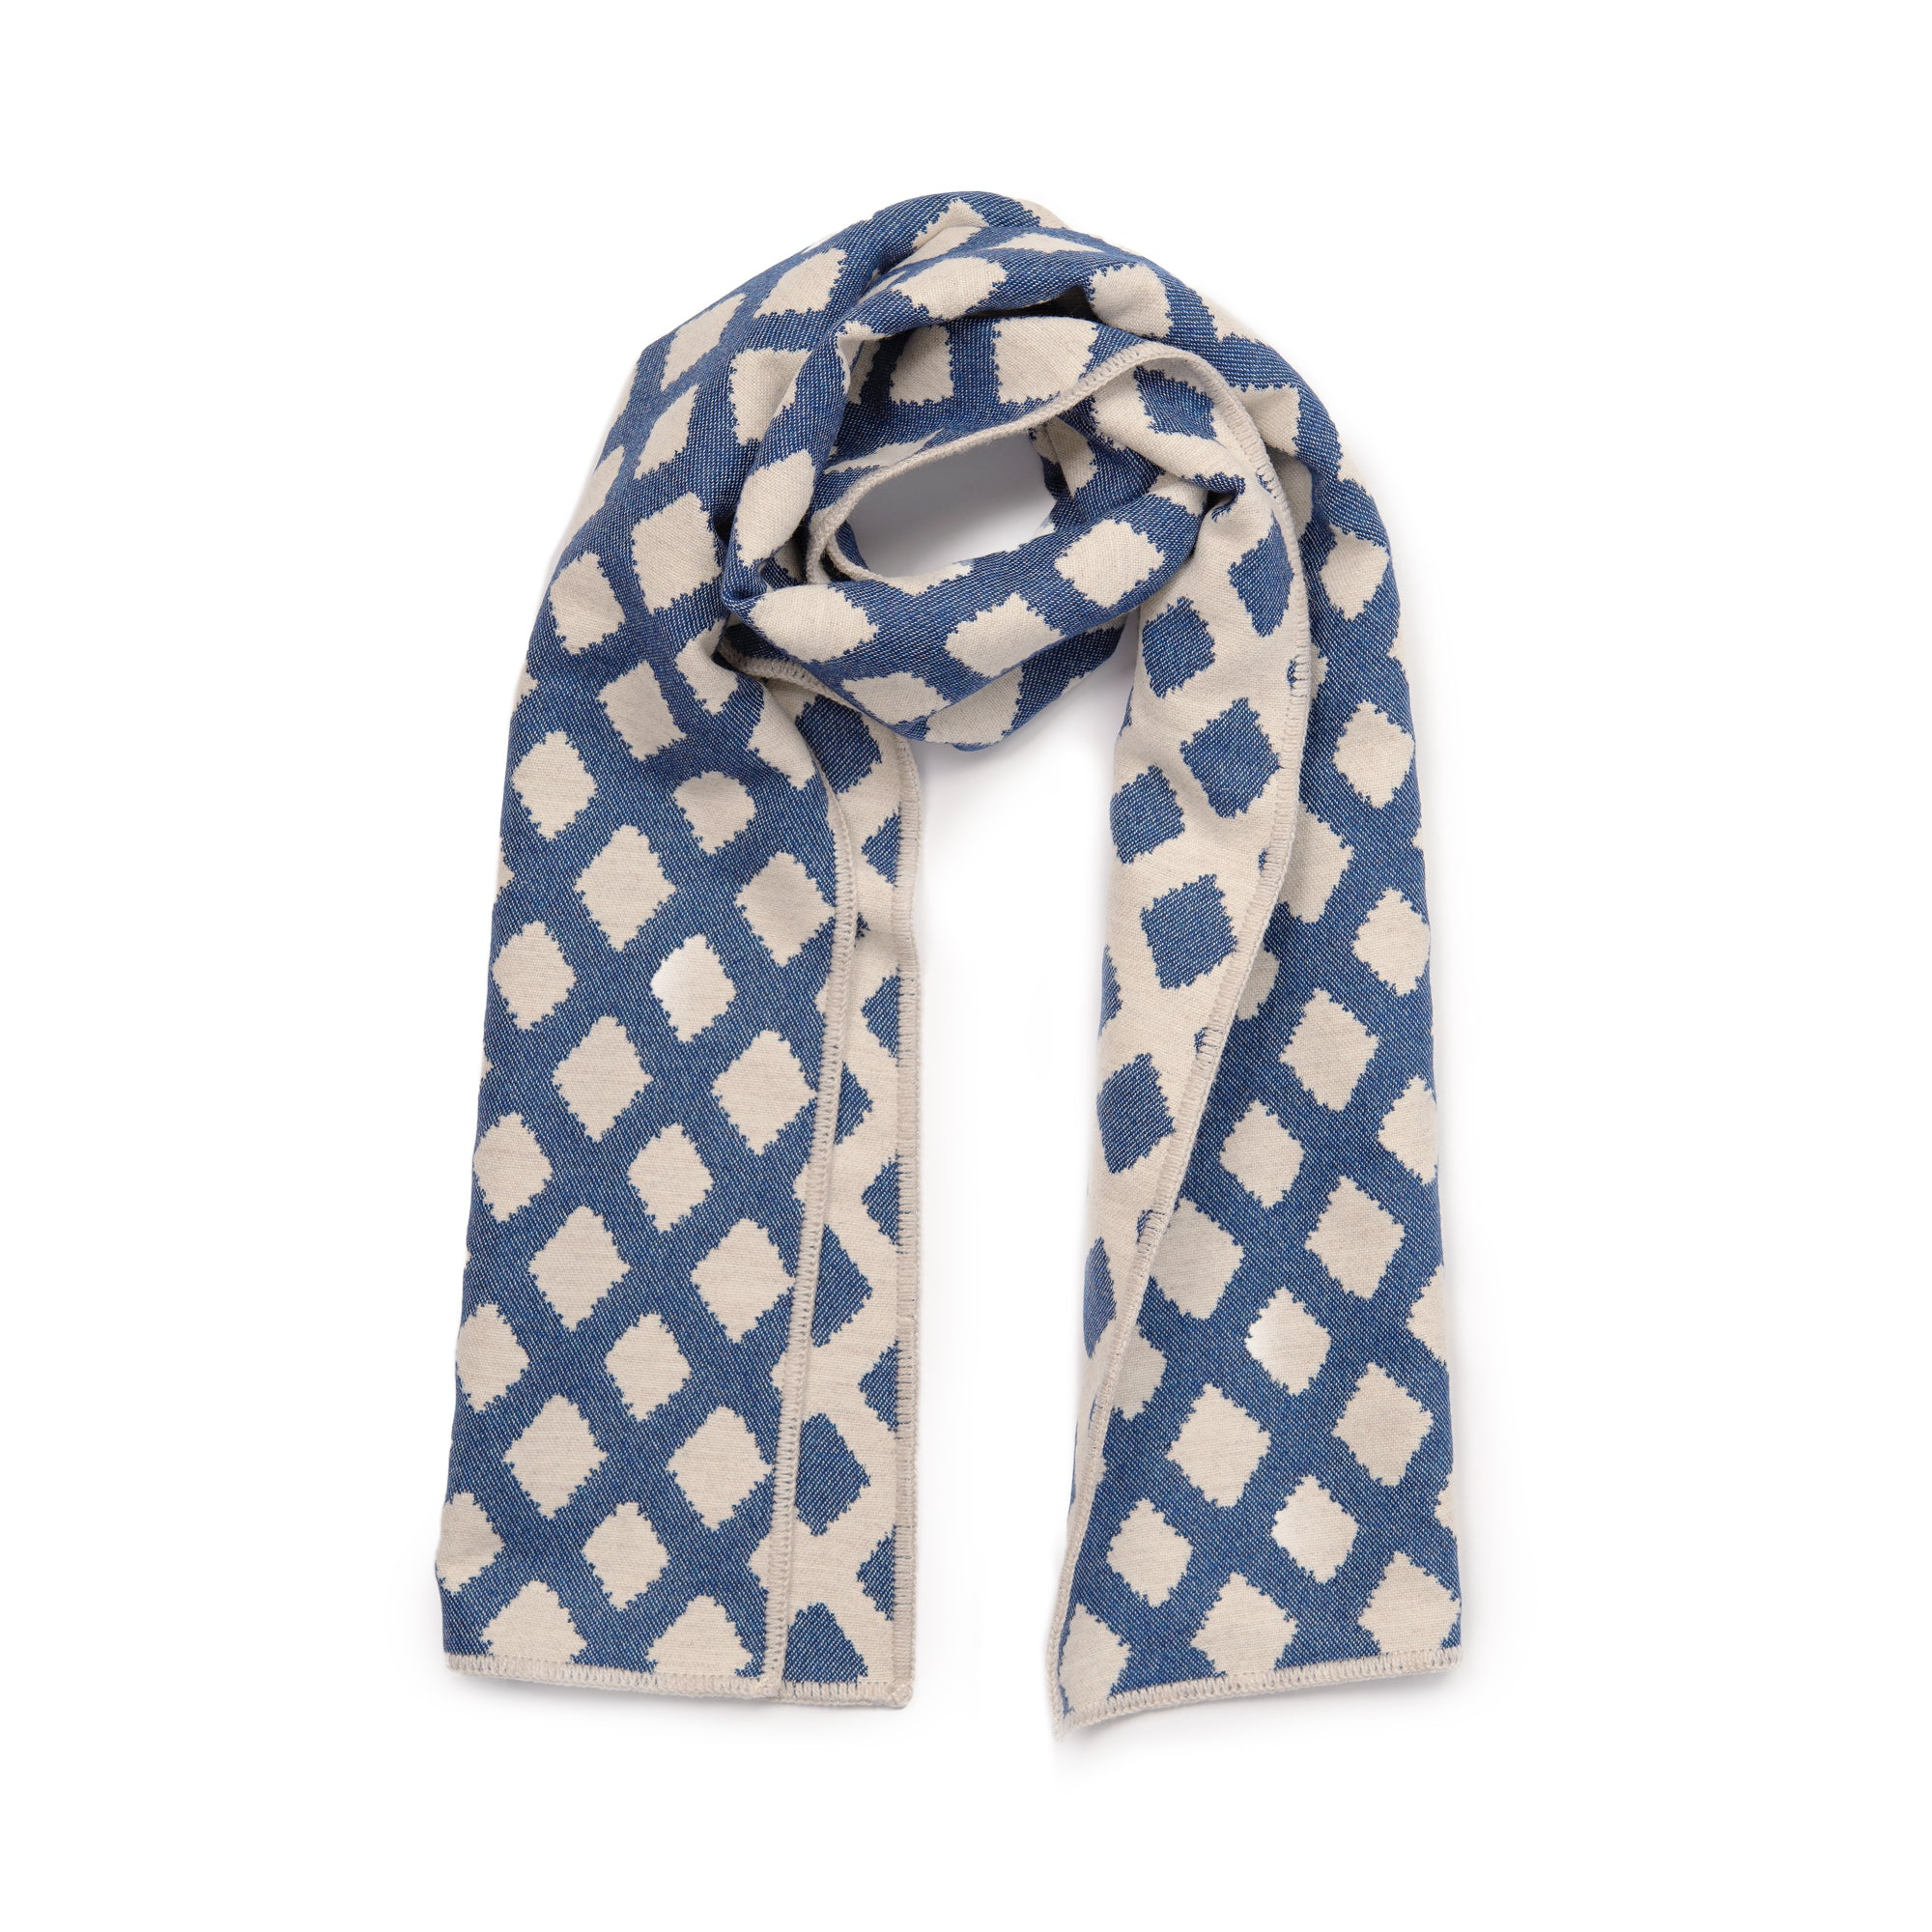 Cadogan Check Reversible Merino Wool Scarf Navy